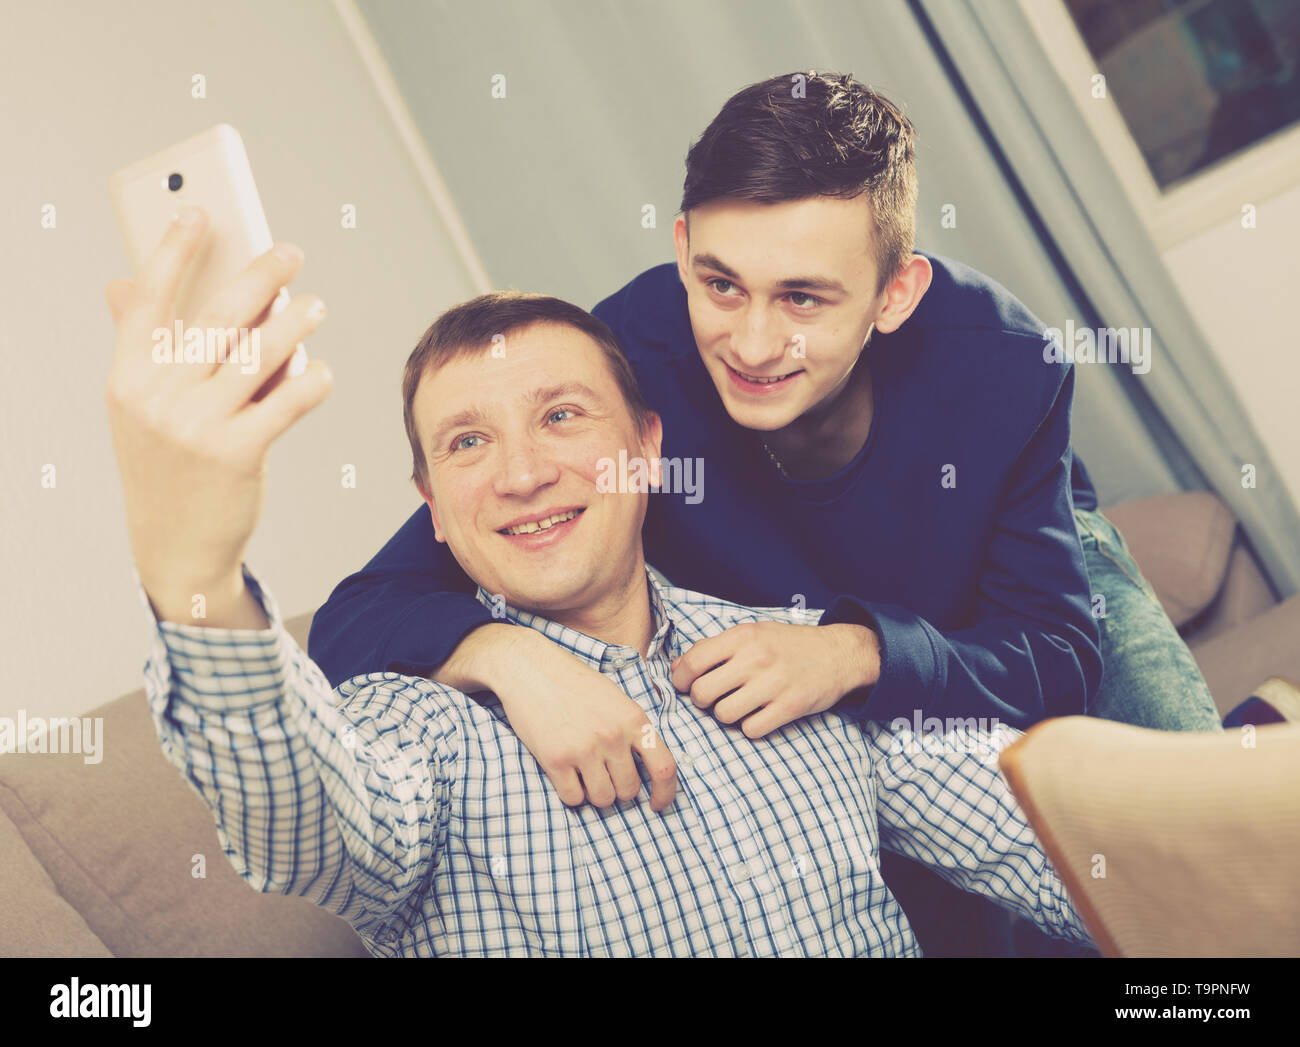 Guy with his father are resting and taking selfie by phone at the home. - Stock Image